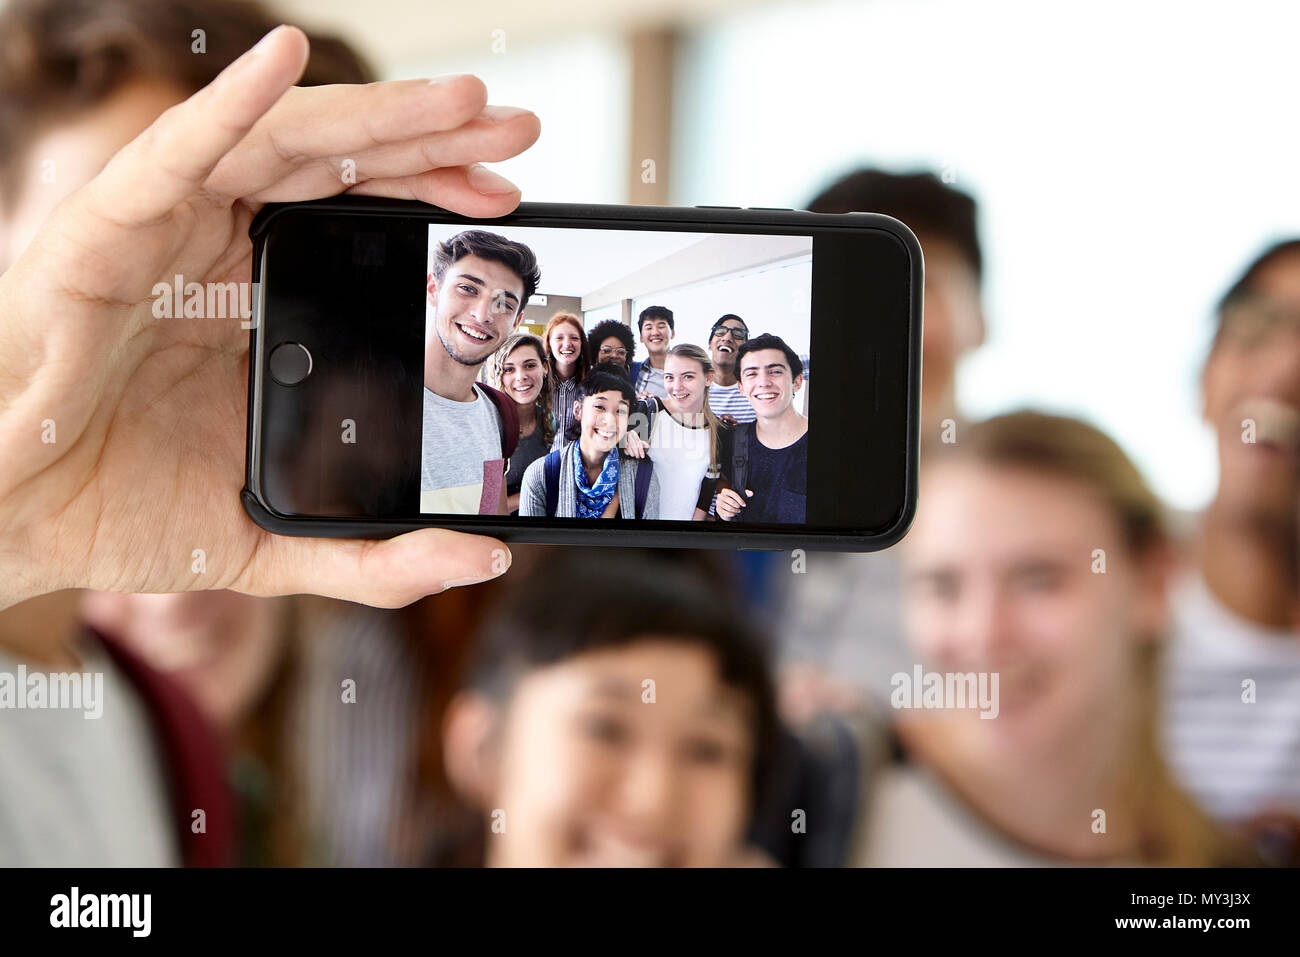 School friends posing together for selfie - Stock Image